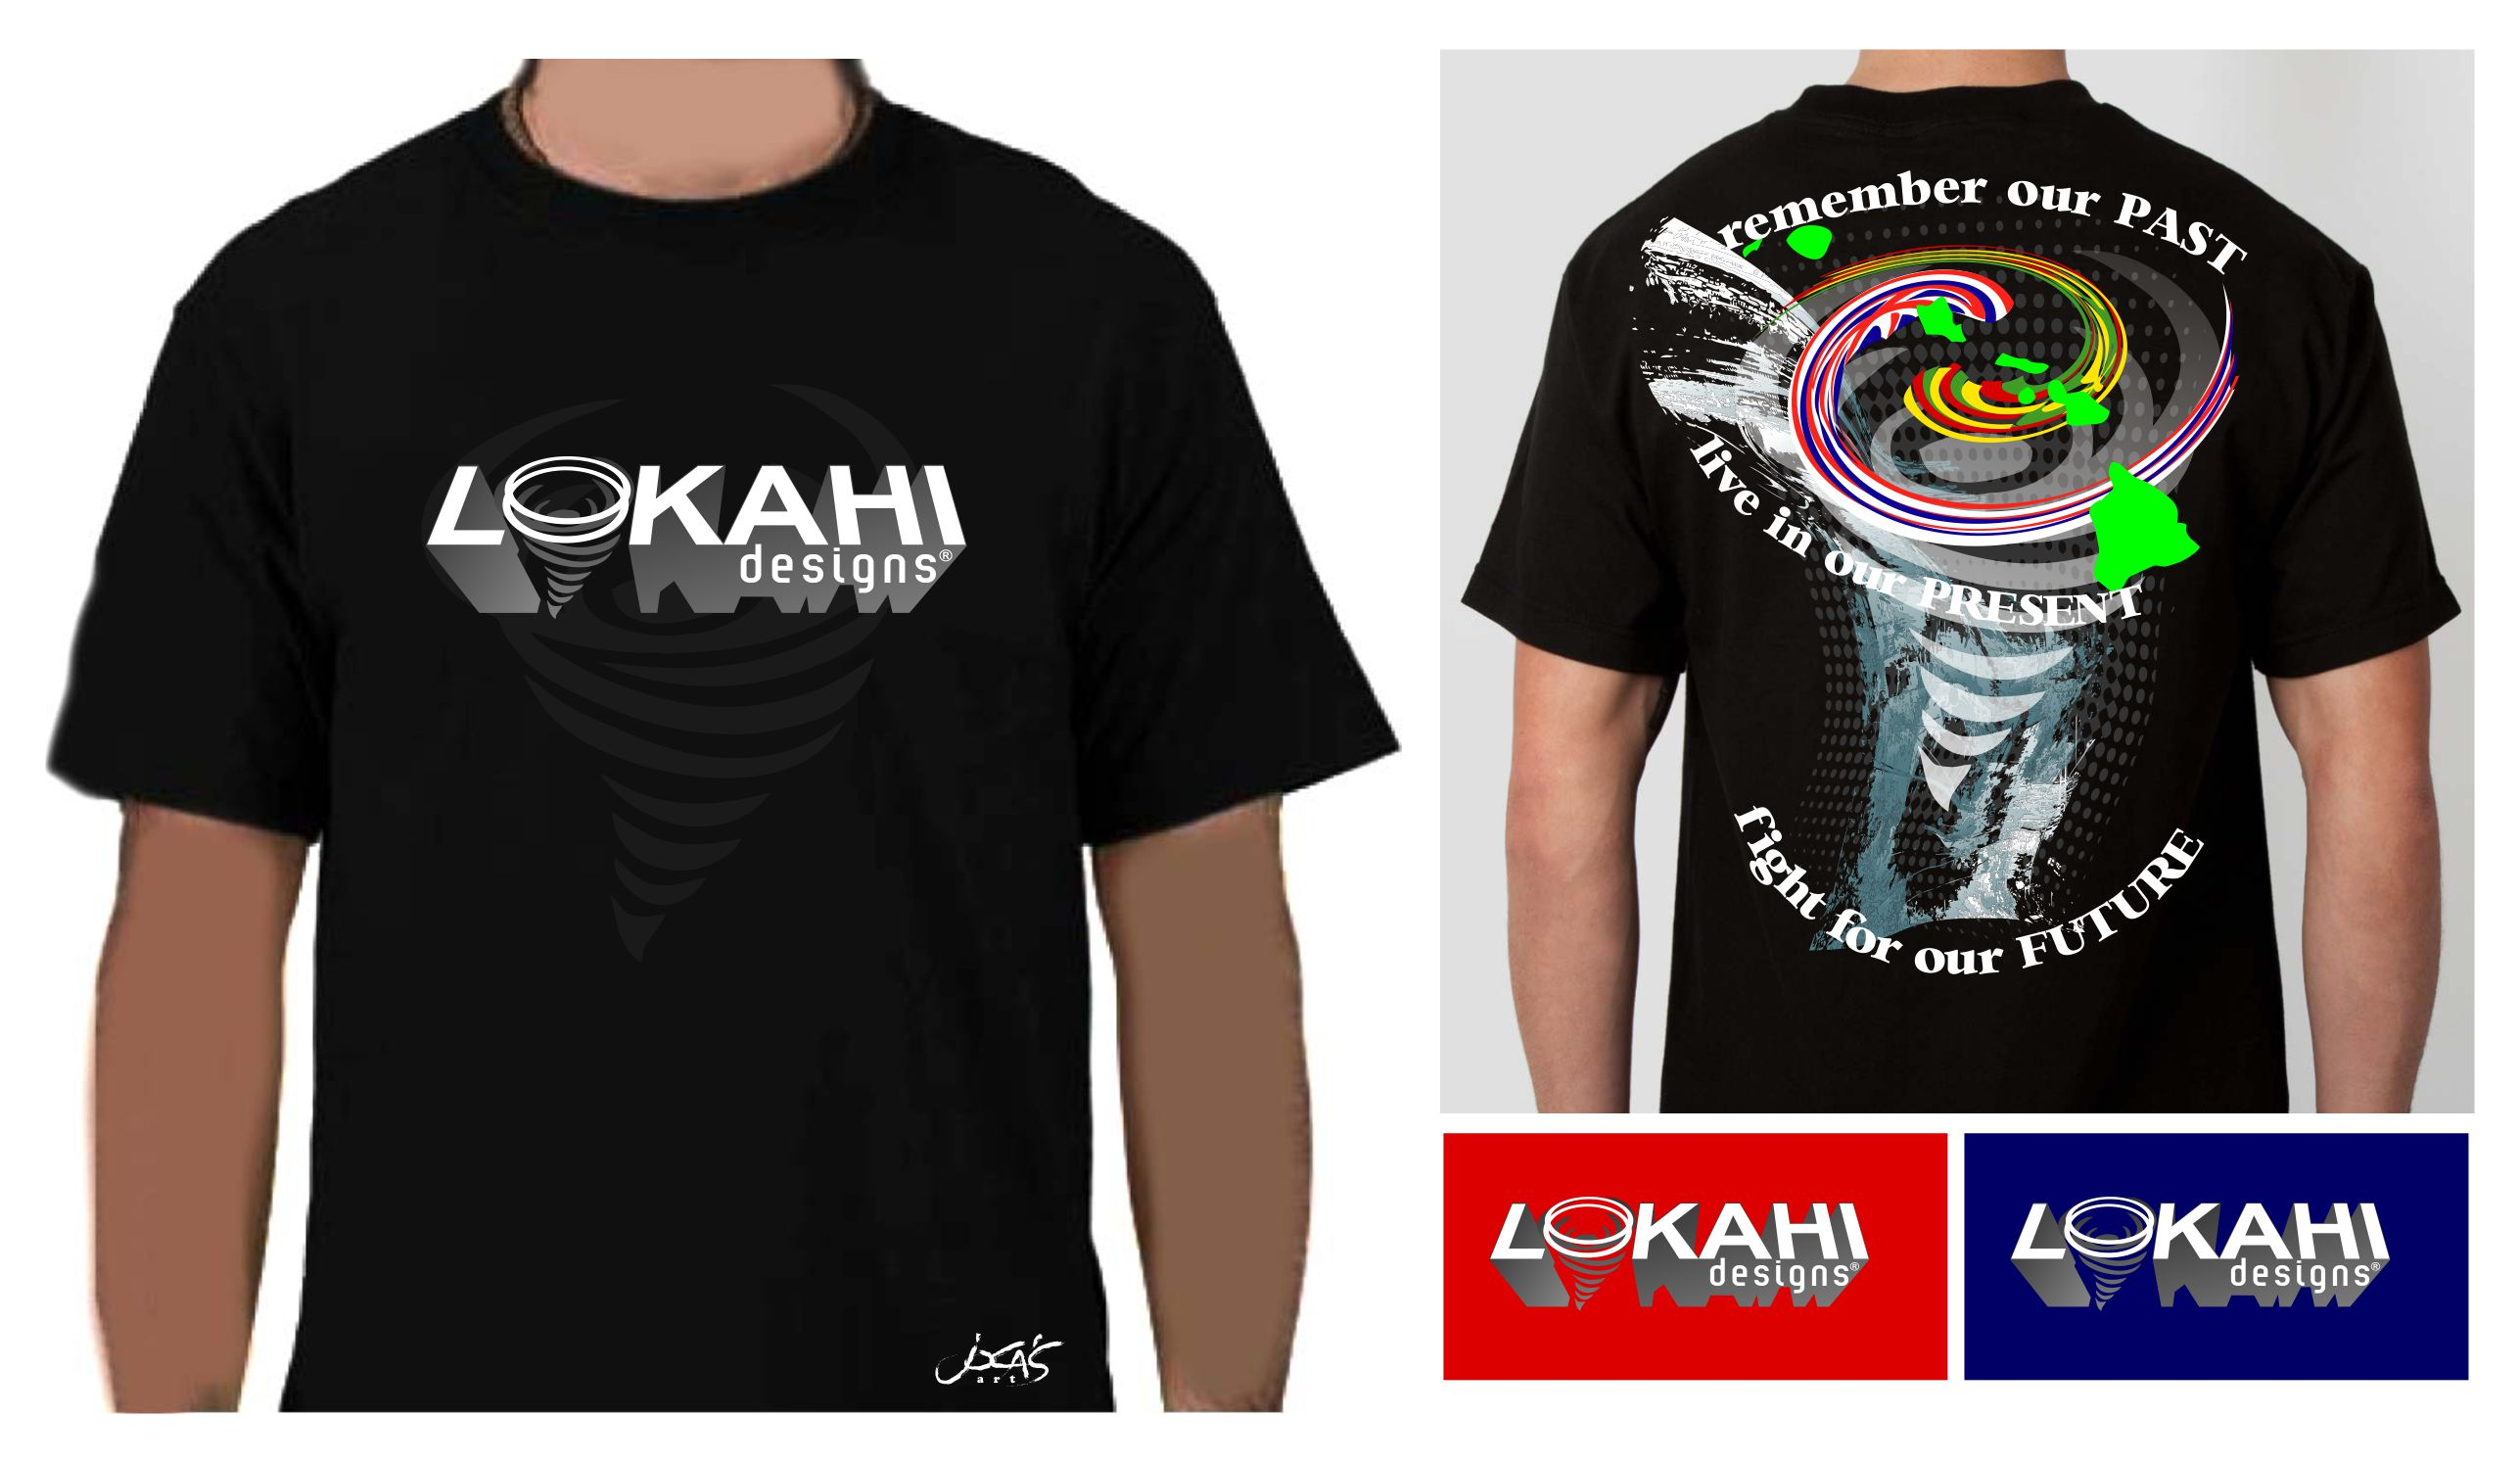 Clothing Design by joca - Entry No. 150 in the Clothing Design Contest Creative Clothing Design for LOKAHI designs.